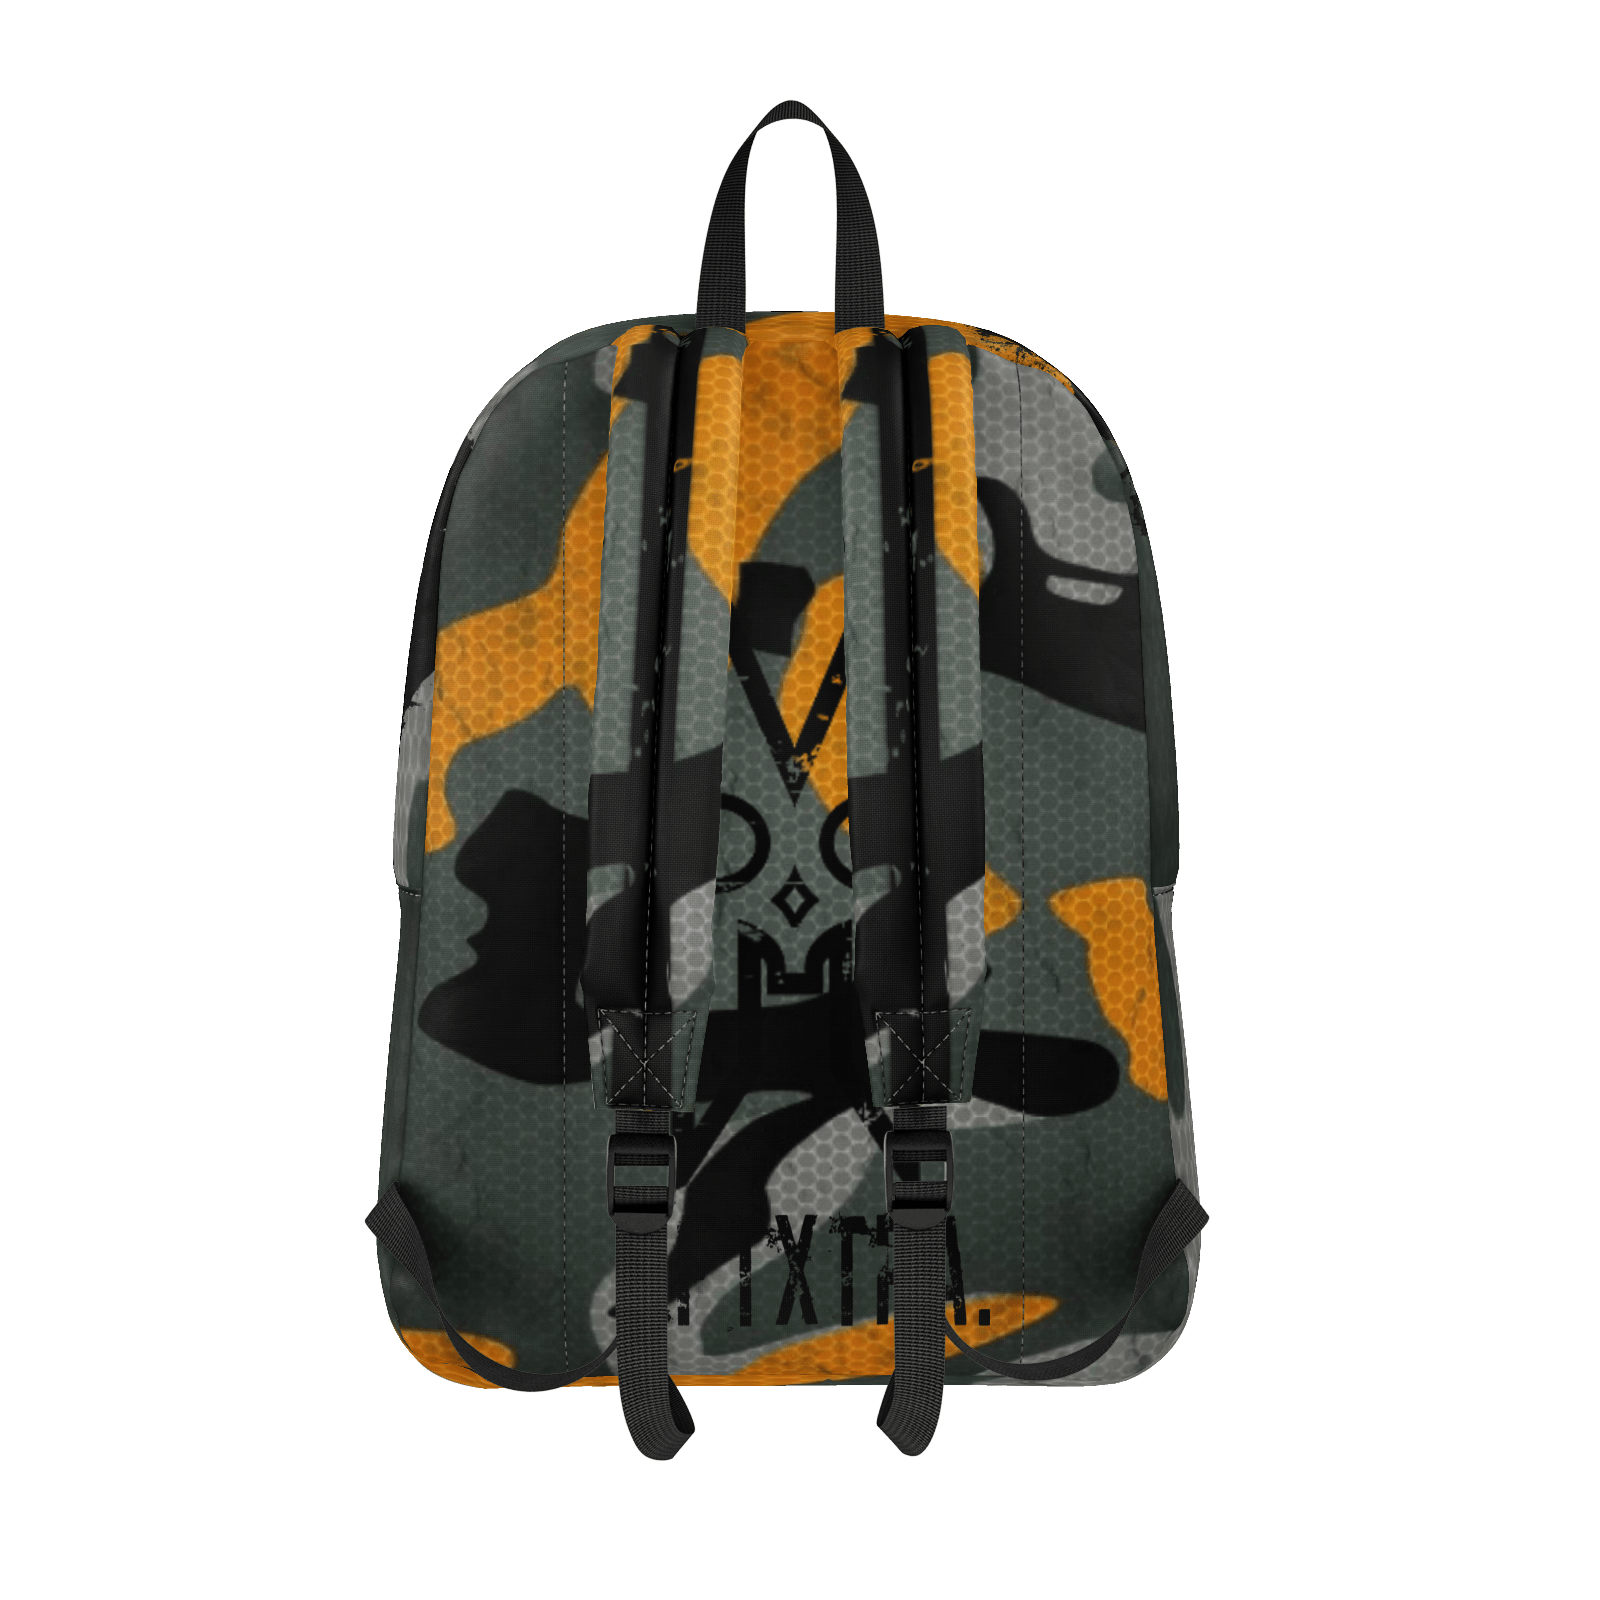 XM GYMWEAR ANNIHILATION ORANGE CAMO BATTLE BAG